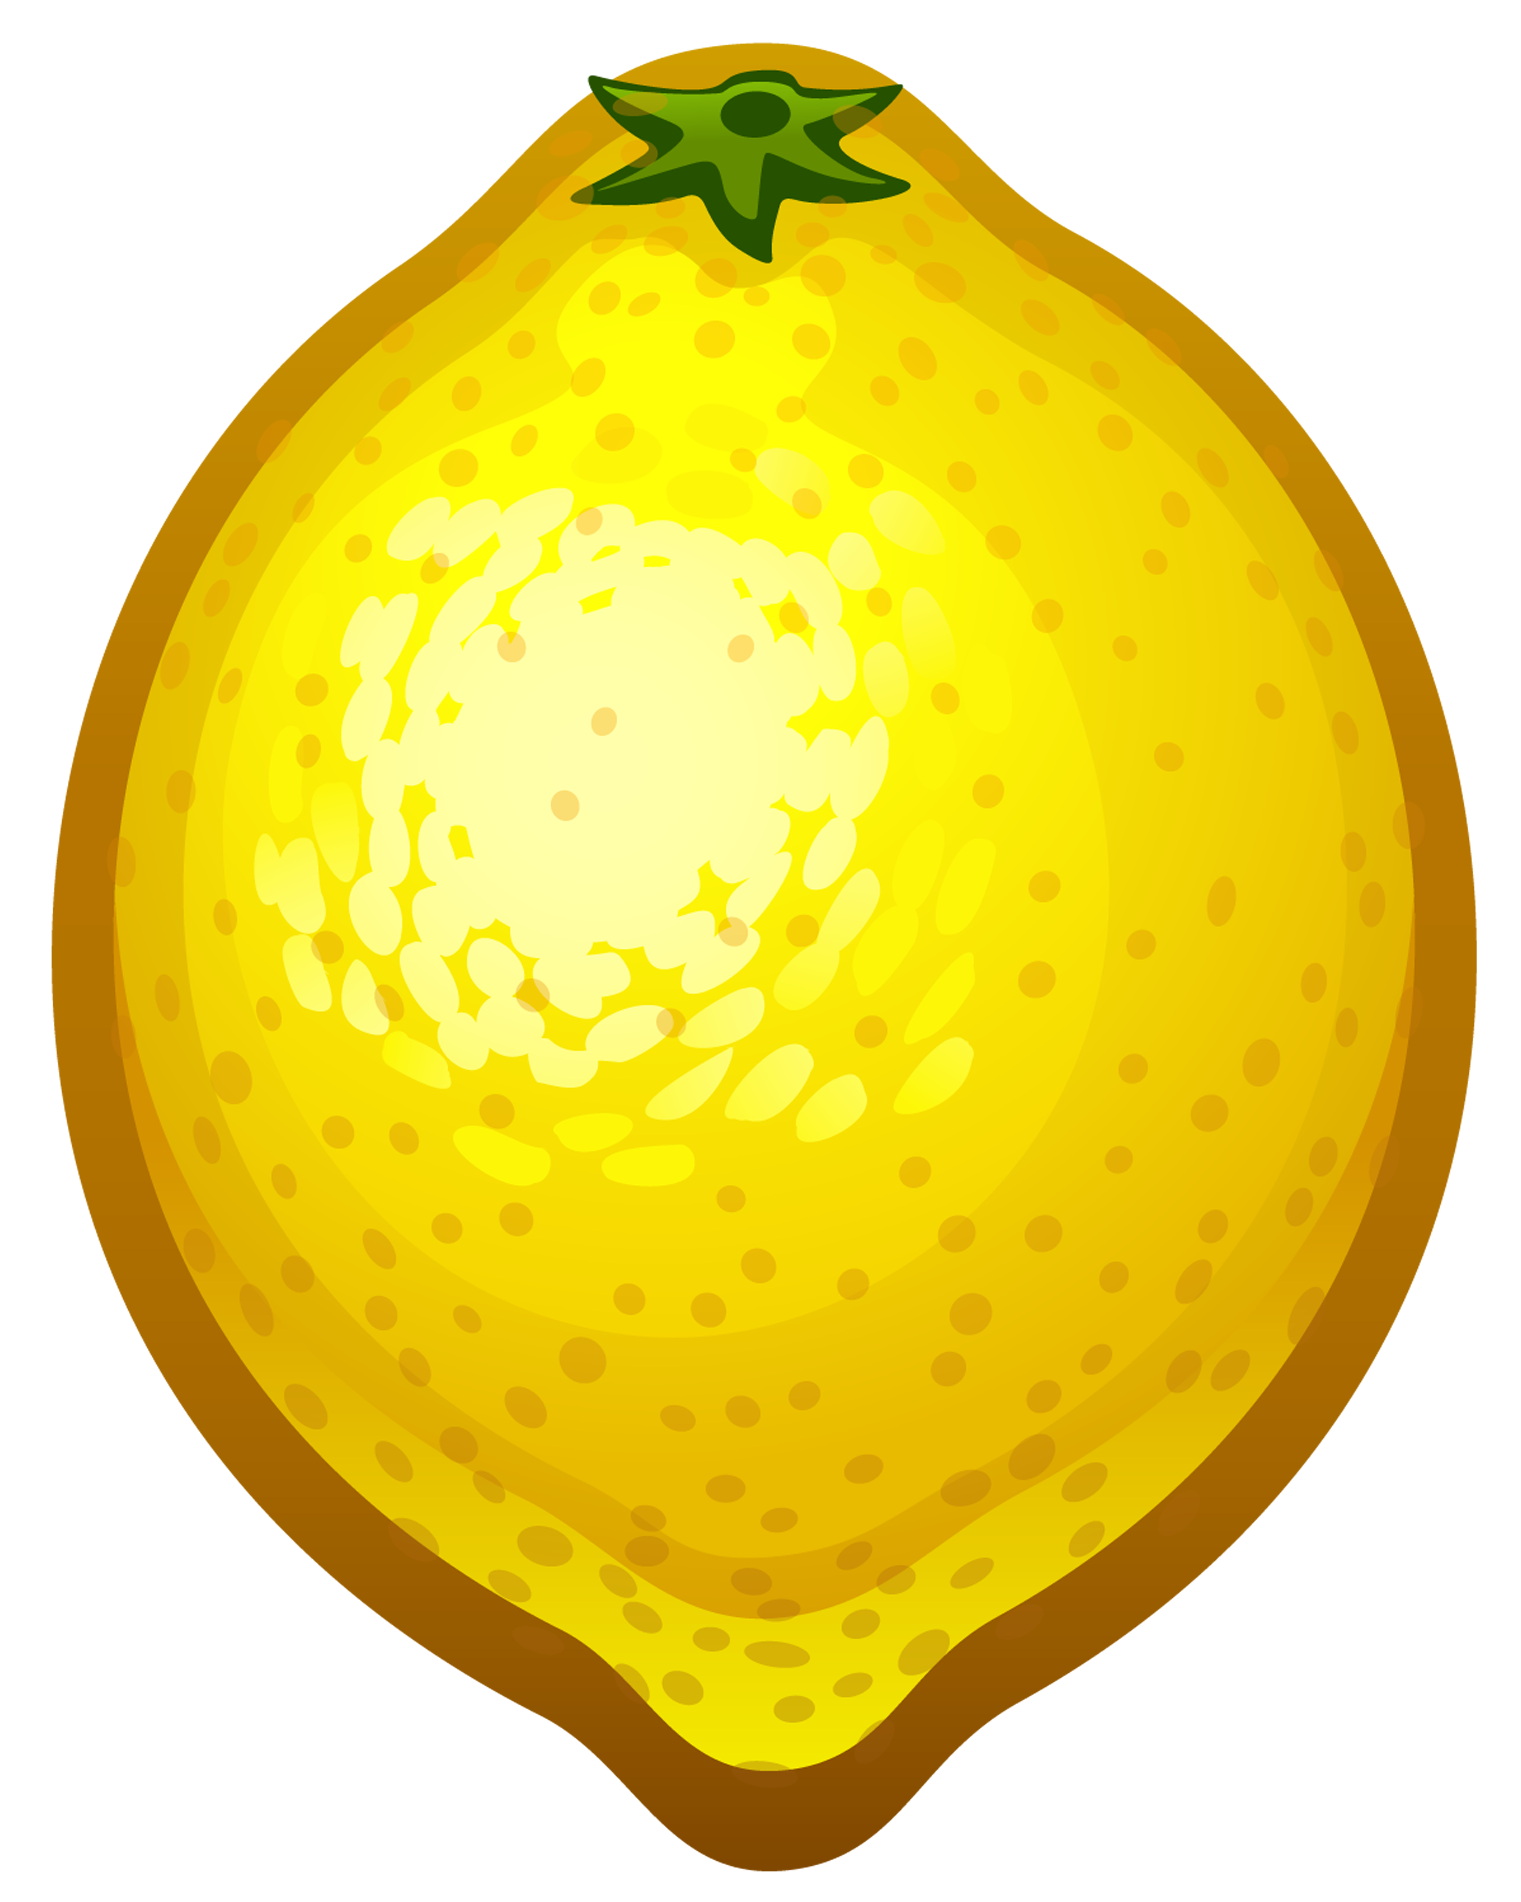 Lemon clip art vector lemon g - Lemon Clipart